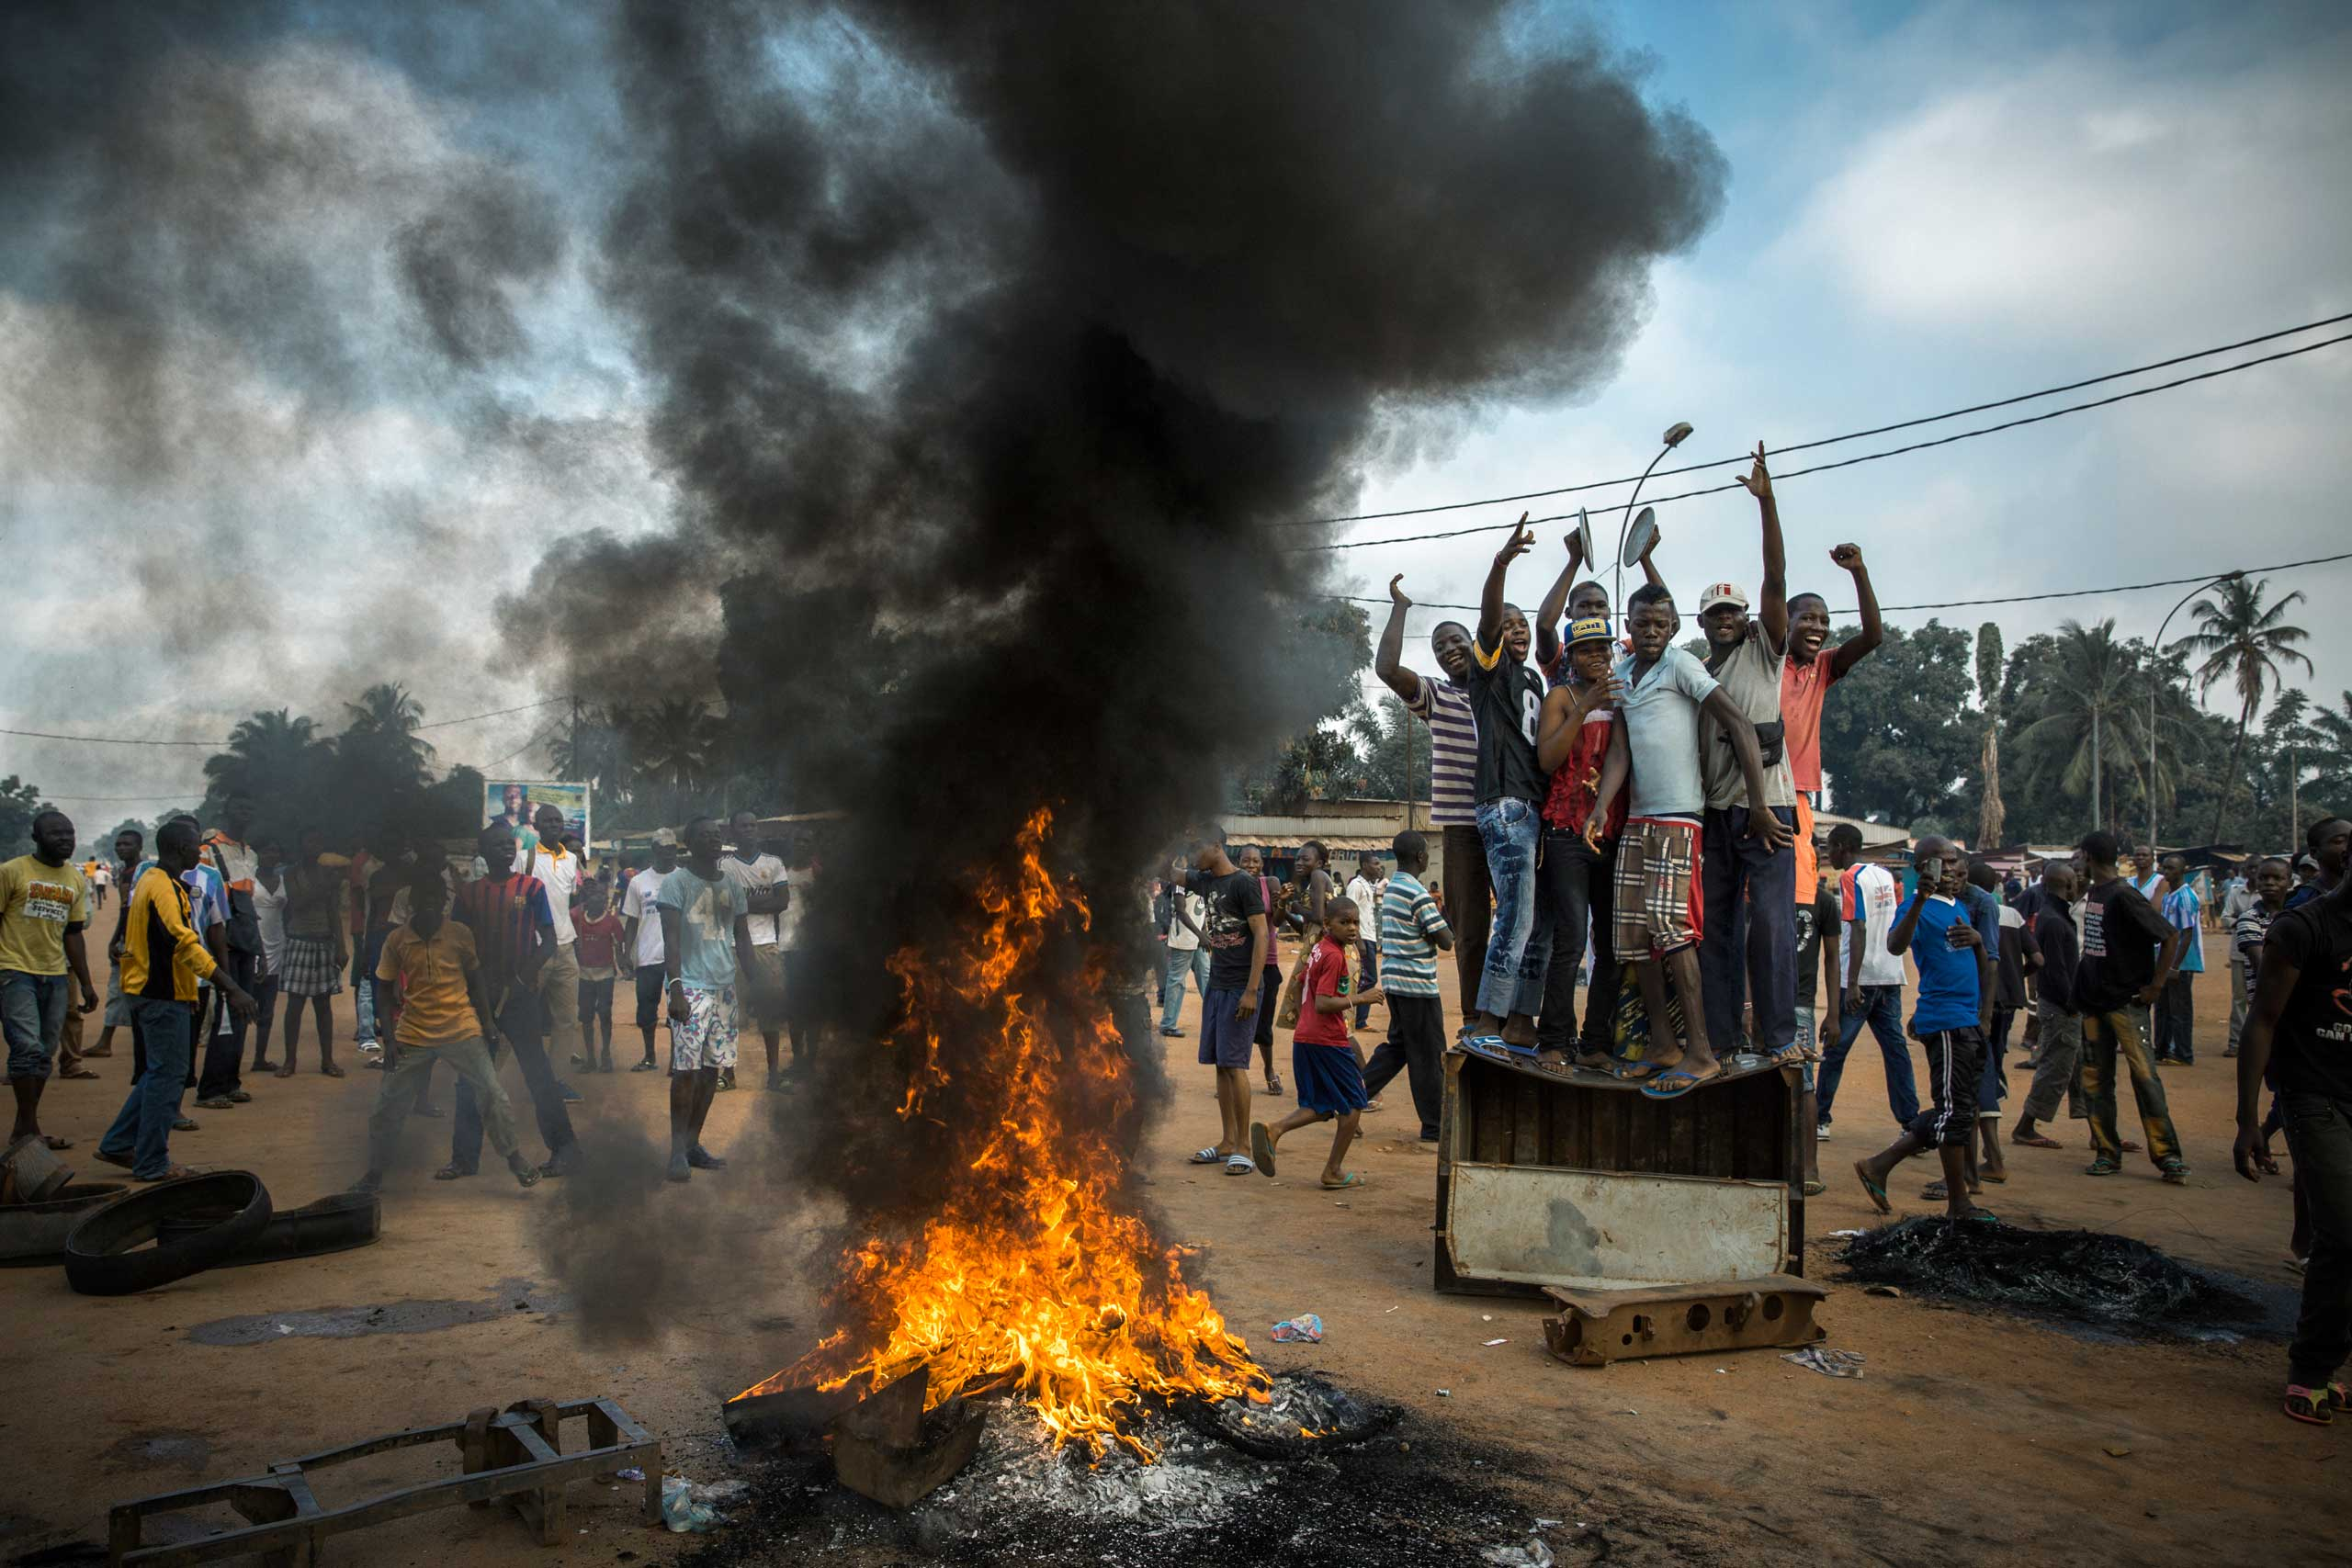 Demonstrators gather on a street to call for the resignation of interim president Michel Djotodia, who led Séléka into the capital months earlier, following the murder of a judge by members of the rebel coalition. A half hour after this picture was made, Séléka members shot into the crowd, killing two and wounding another. Bangui, Central African Republic. Nov. 17, 2013.